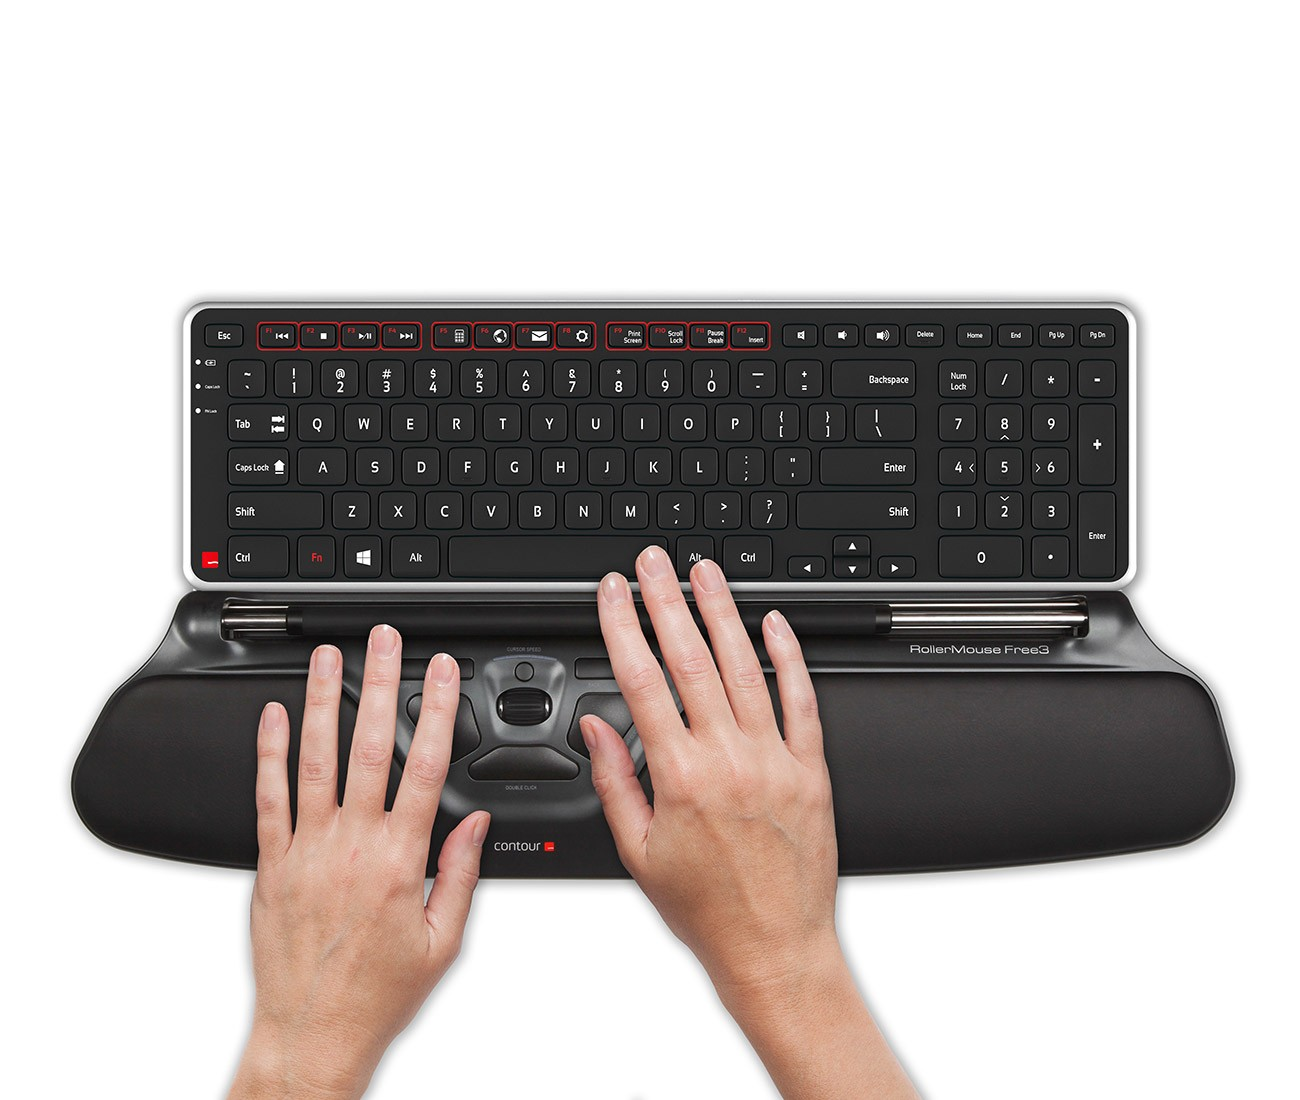 Computer input devices has introduced freestyle a range -  Using The Free 3